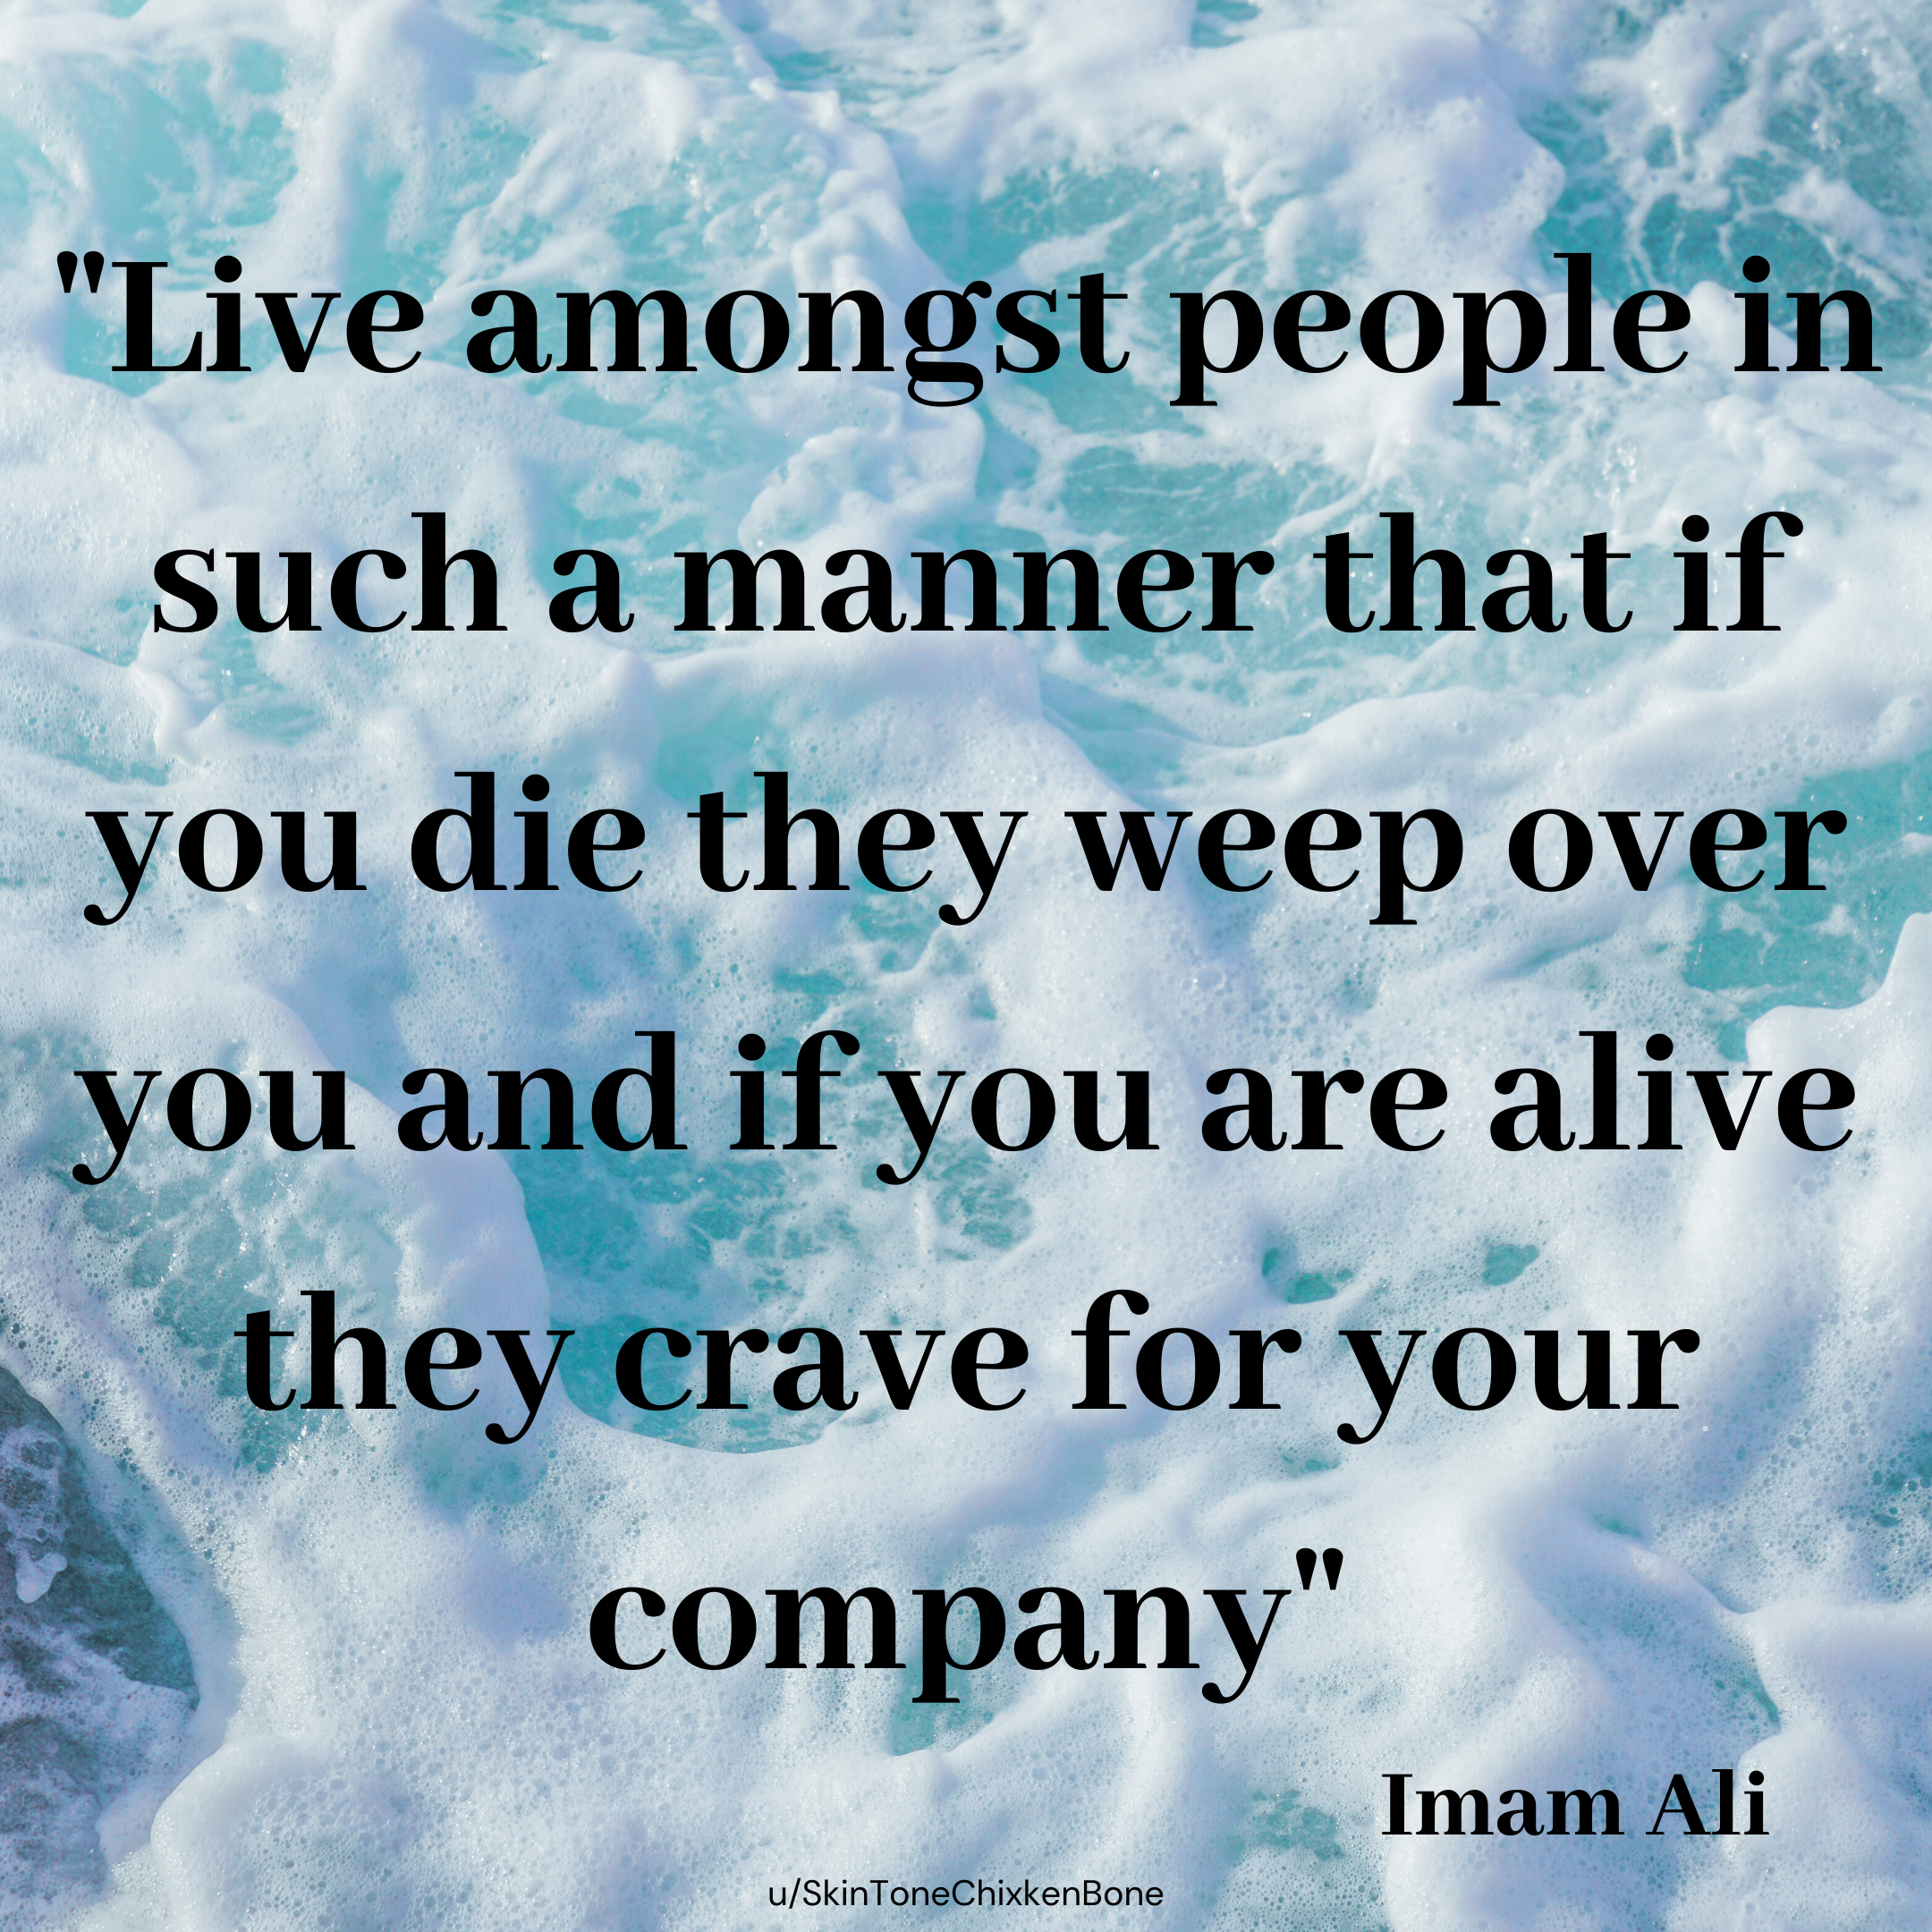 """Live amongst people in such a manner that if you die they weep over you and if you are alive they crave for your company"" – Imam Ali (800px 800px)"